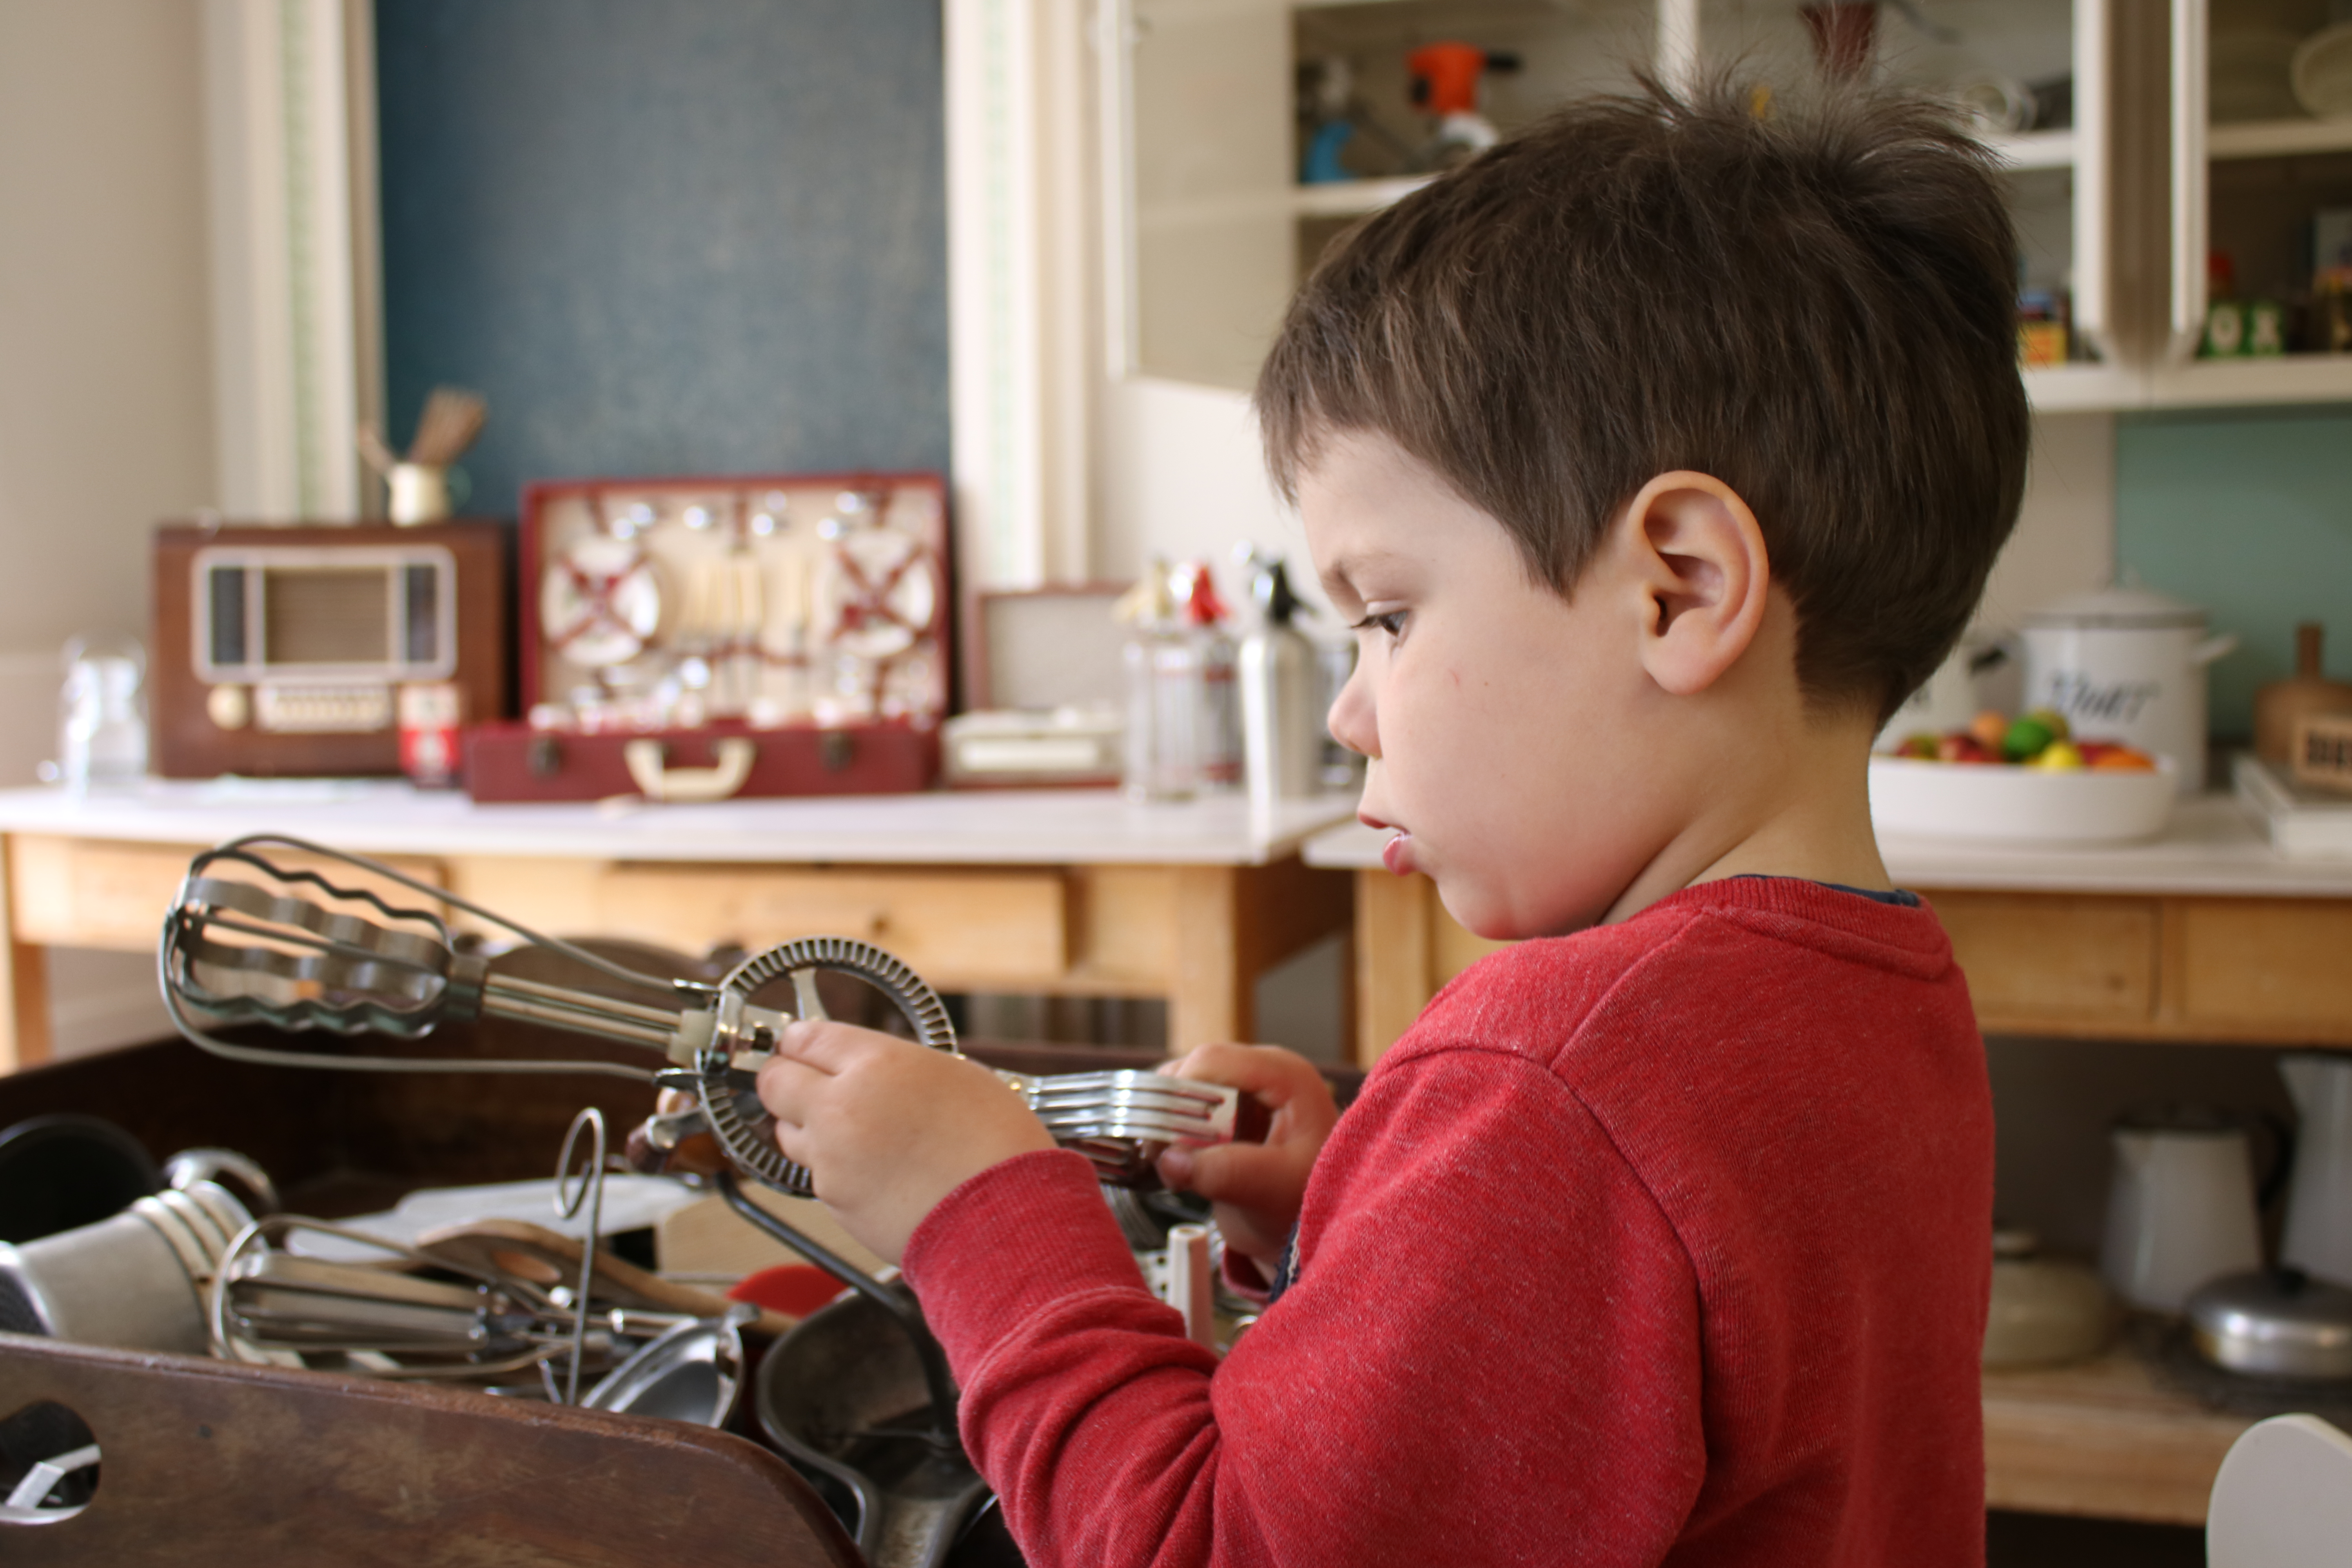 cody playing with kitchen utensils in the old kitchen